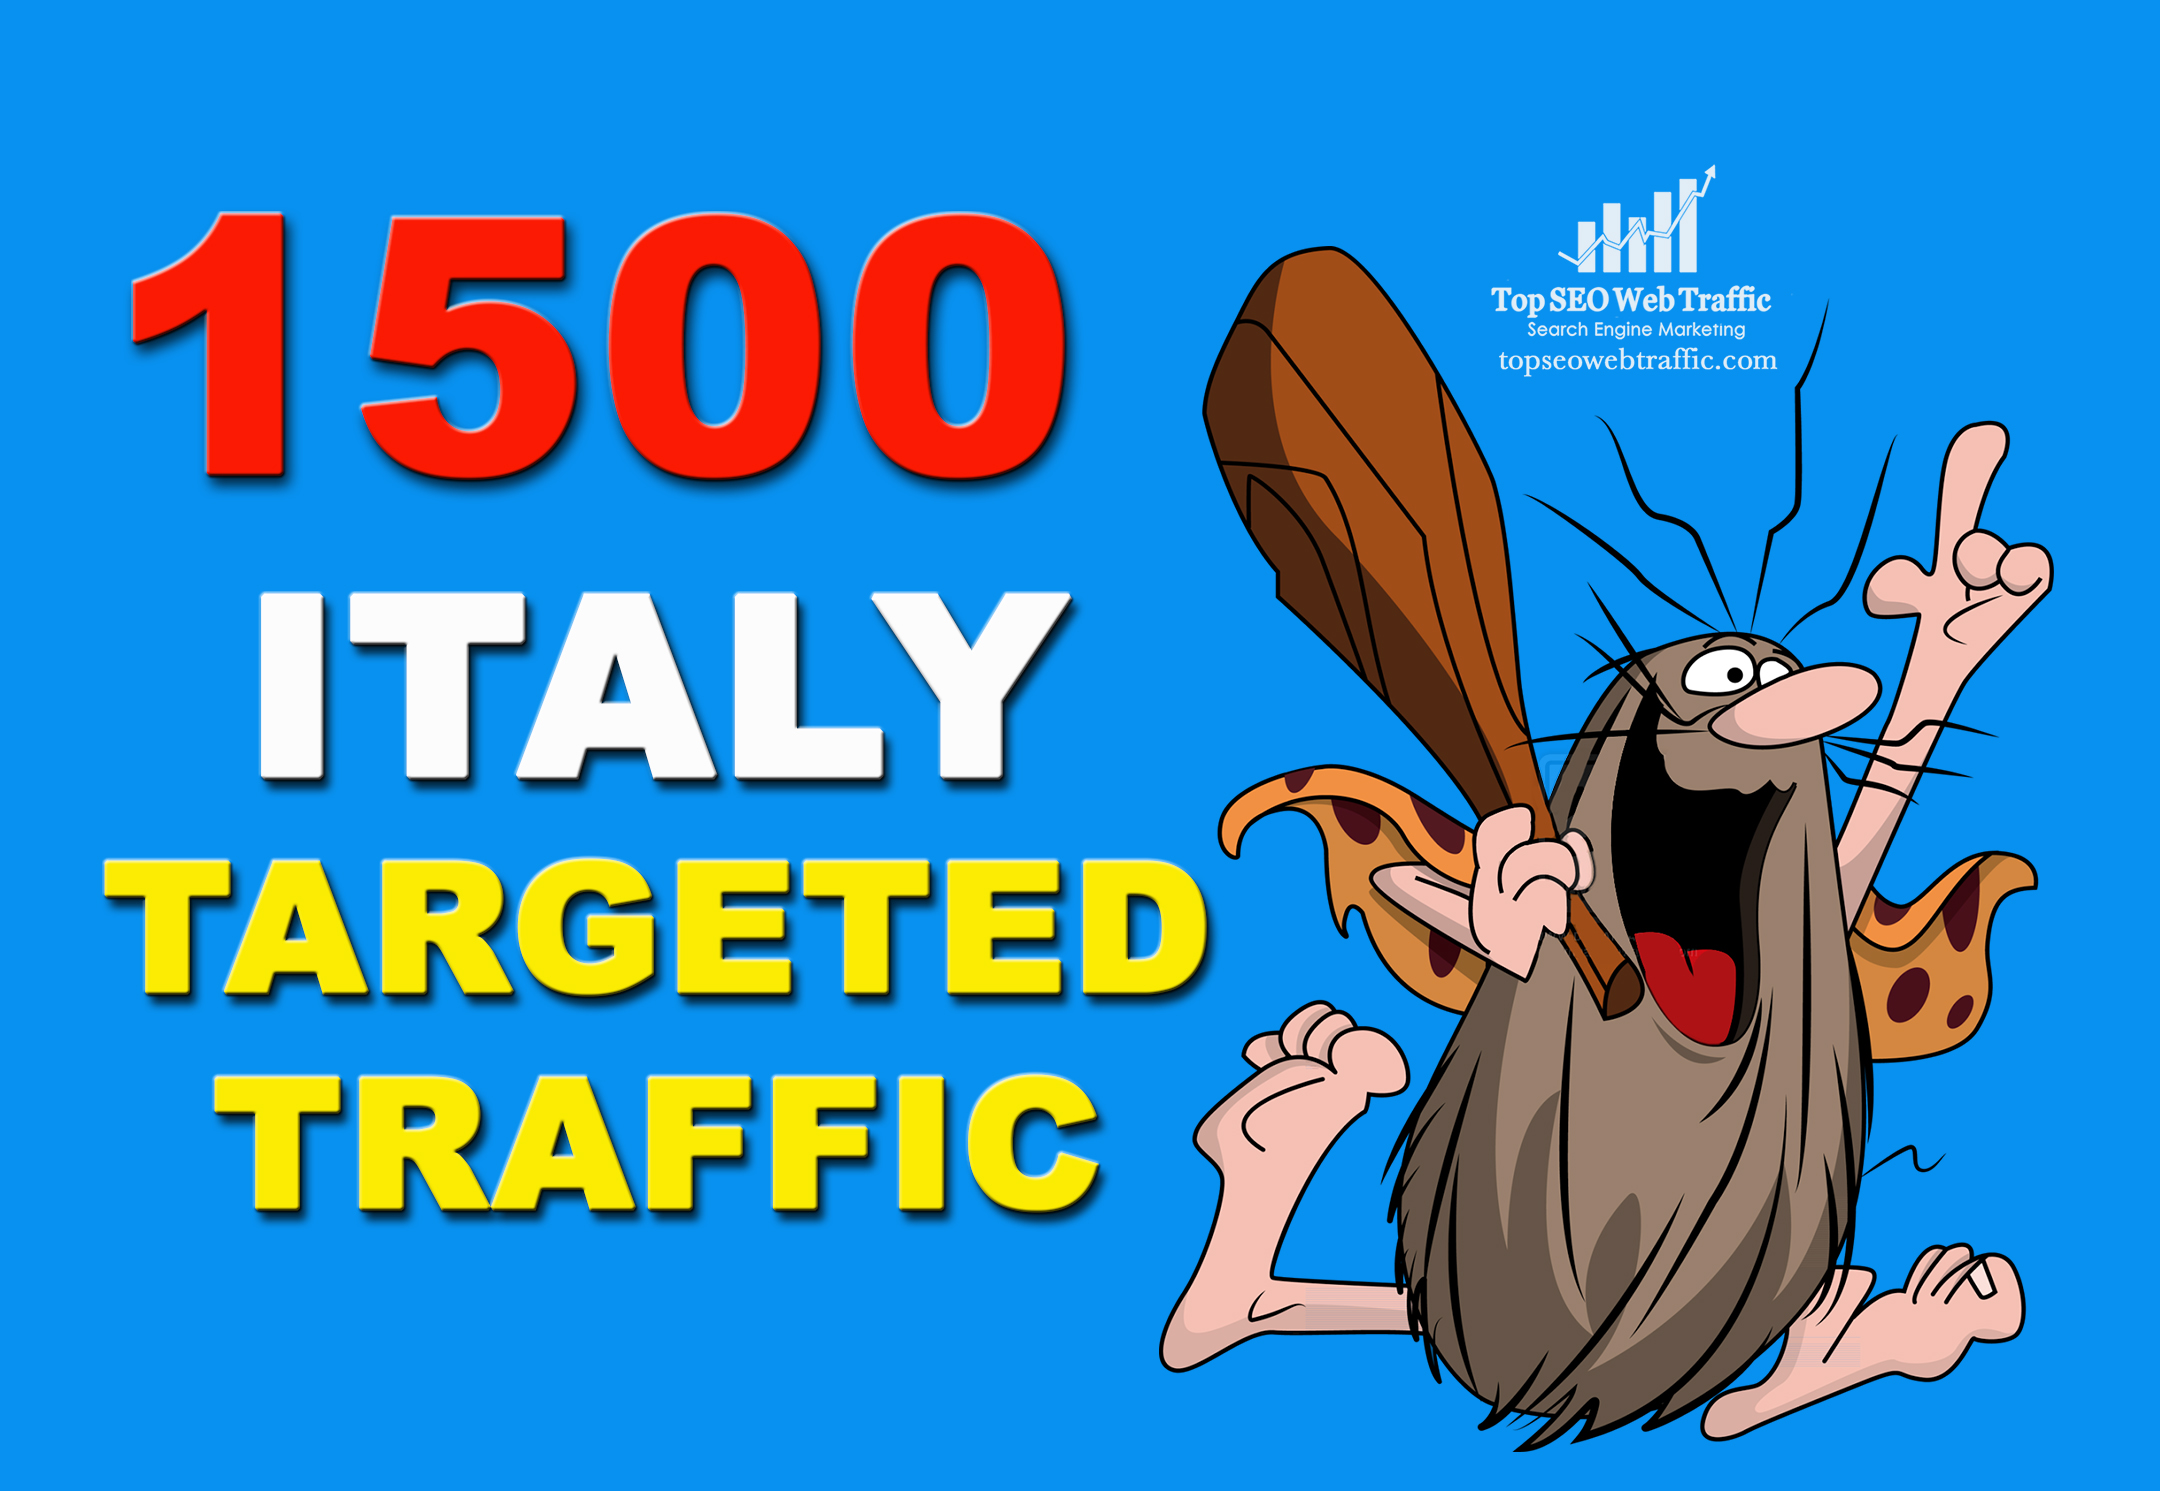 GET 1,500 ITALY WEB TRAFFIC TARGETED VISITORS